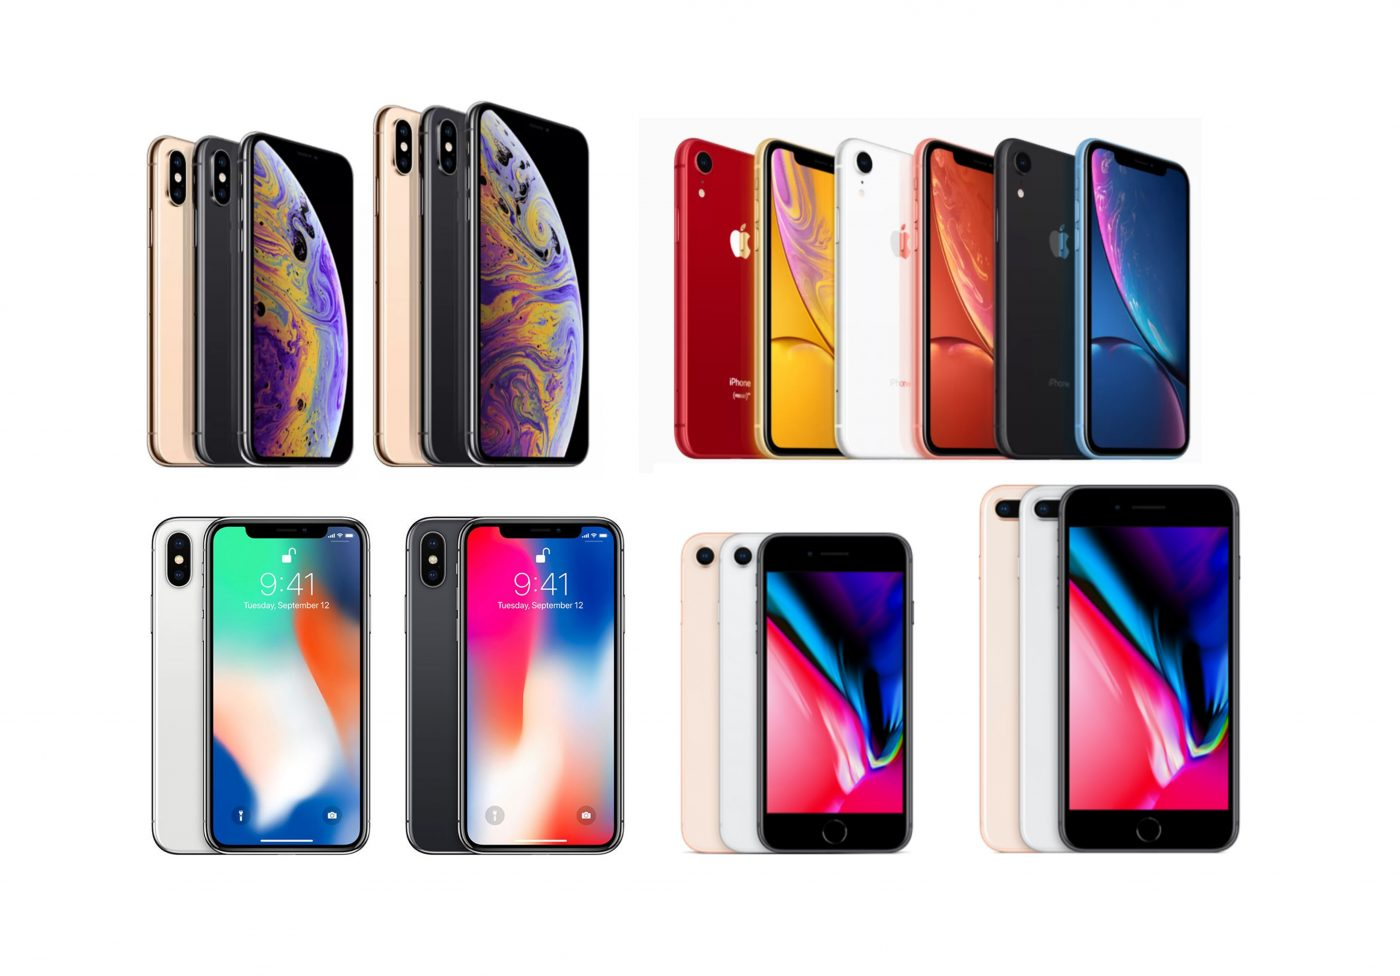 誰貴誰強一次看明白!iPhone XS / XS Max / XR 與 iPhone X / 8 / 8 Plus 全規格完整比較表! @3C 達人廖阿輝